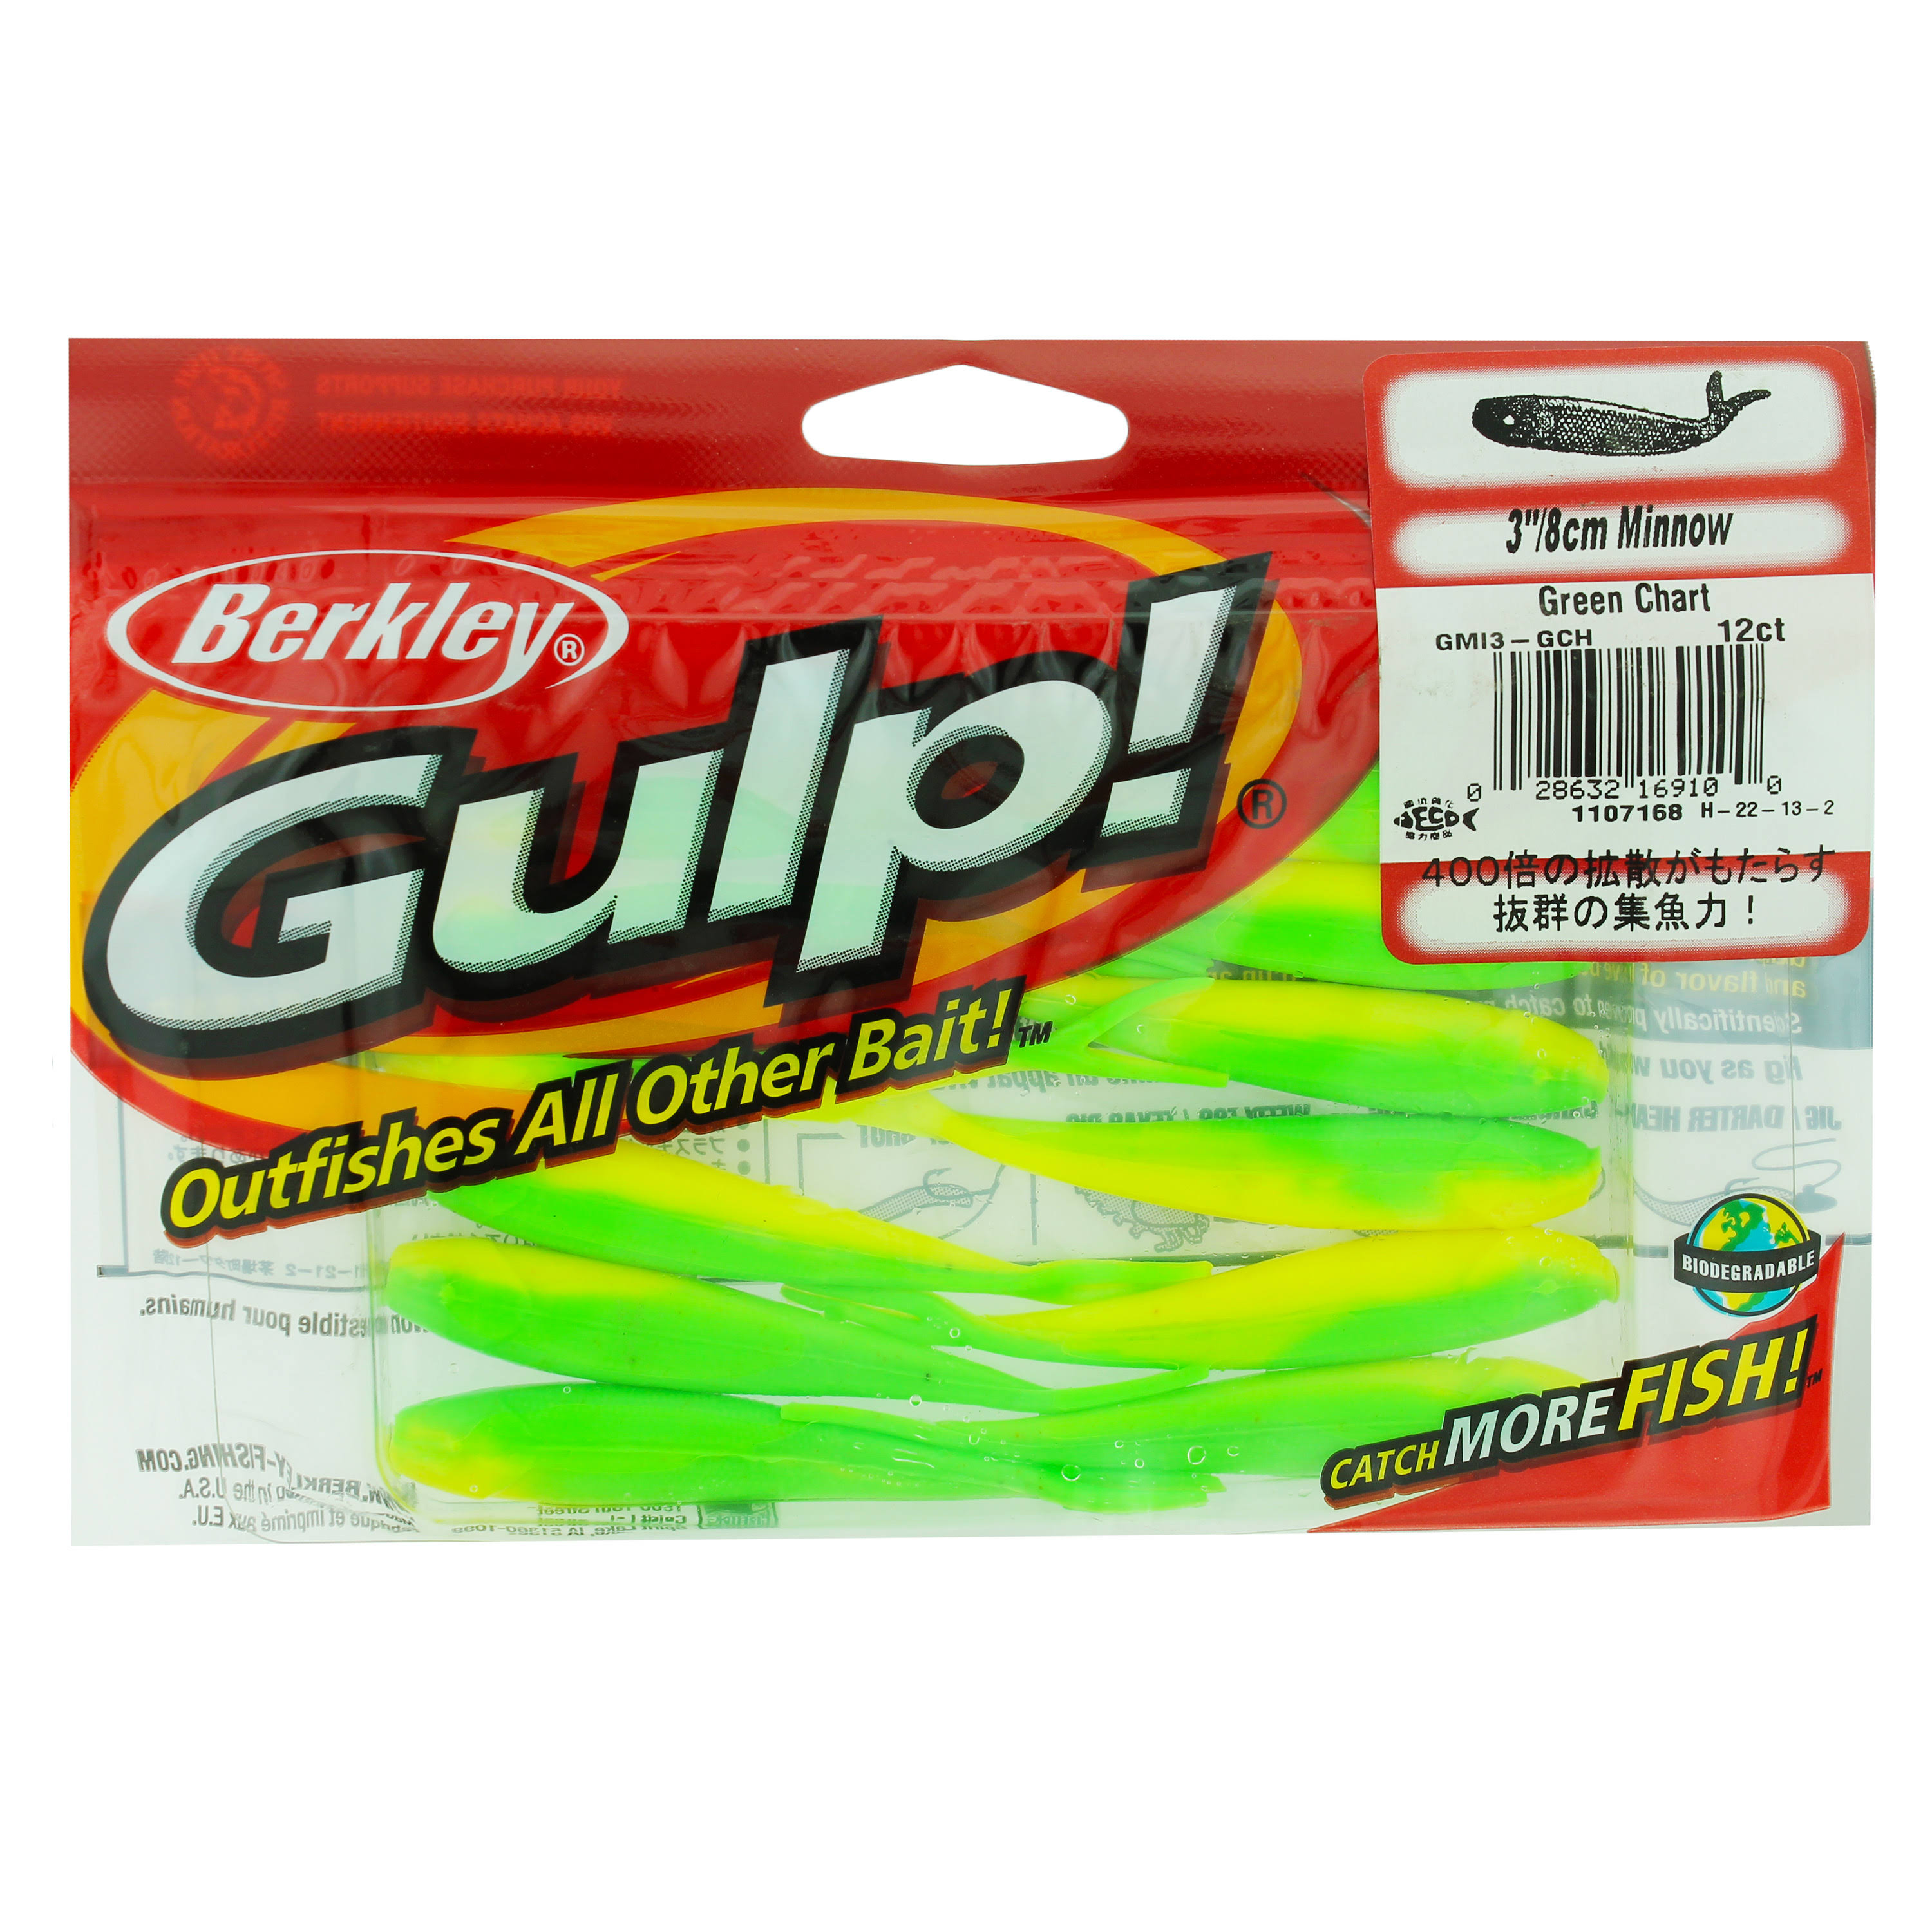 Berkley Gulp! Minnow Soft Bait - Green Chartreuse, 3in